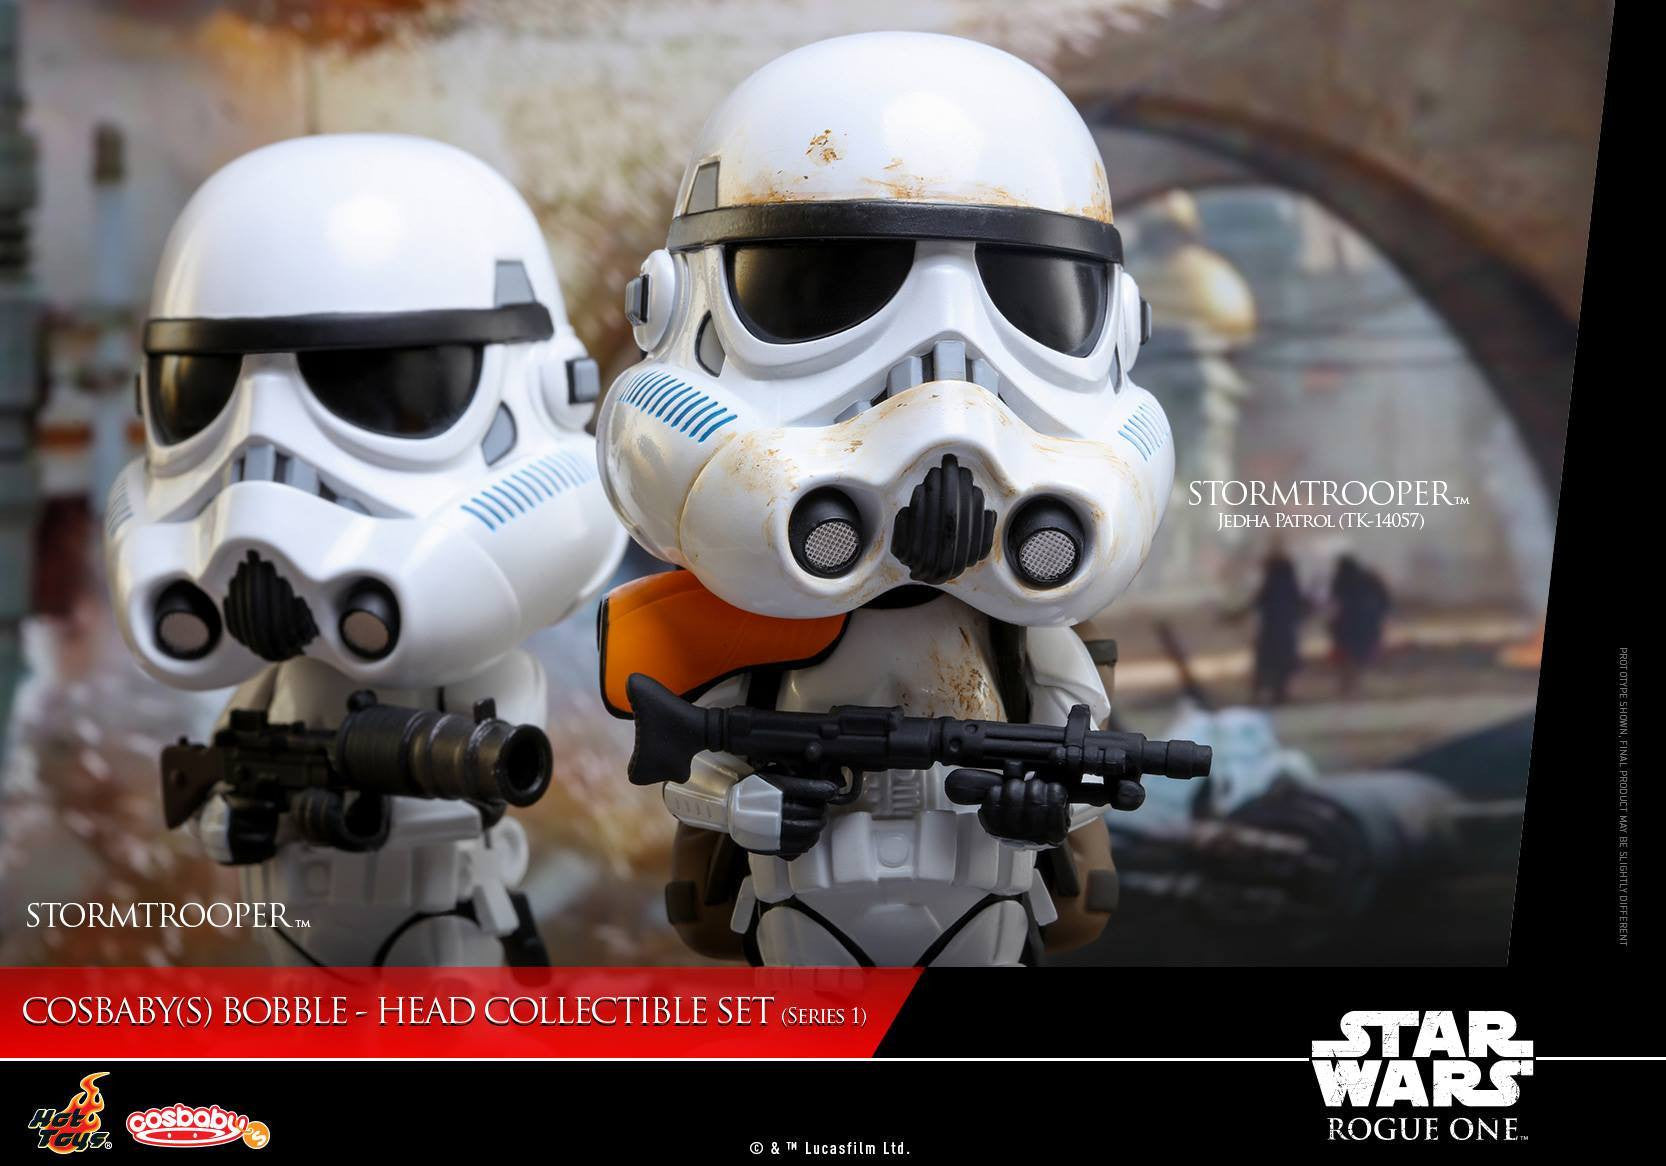 (IN STOCK) Hot Toys - COSB335 - Rogue One: A Star Wars Story - Cosbaby Bobble-Head (Series 1) Set of 6 - Marvelous Toys - 22